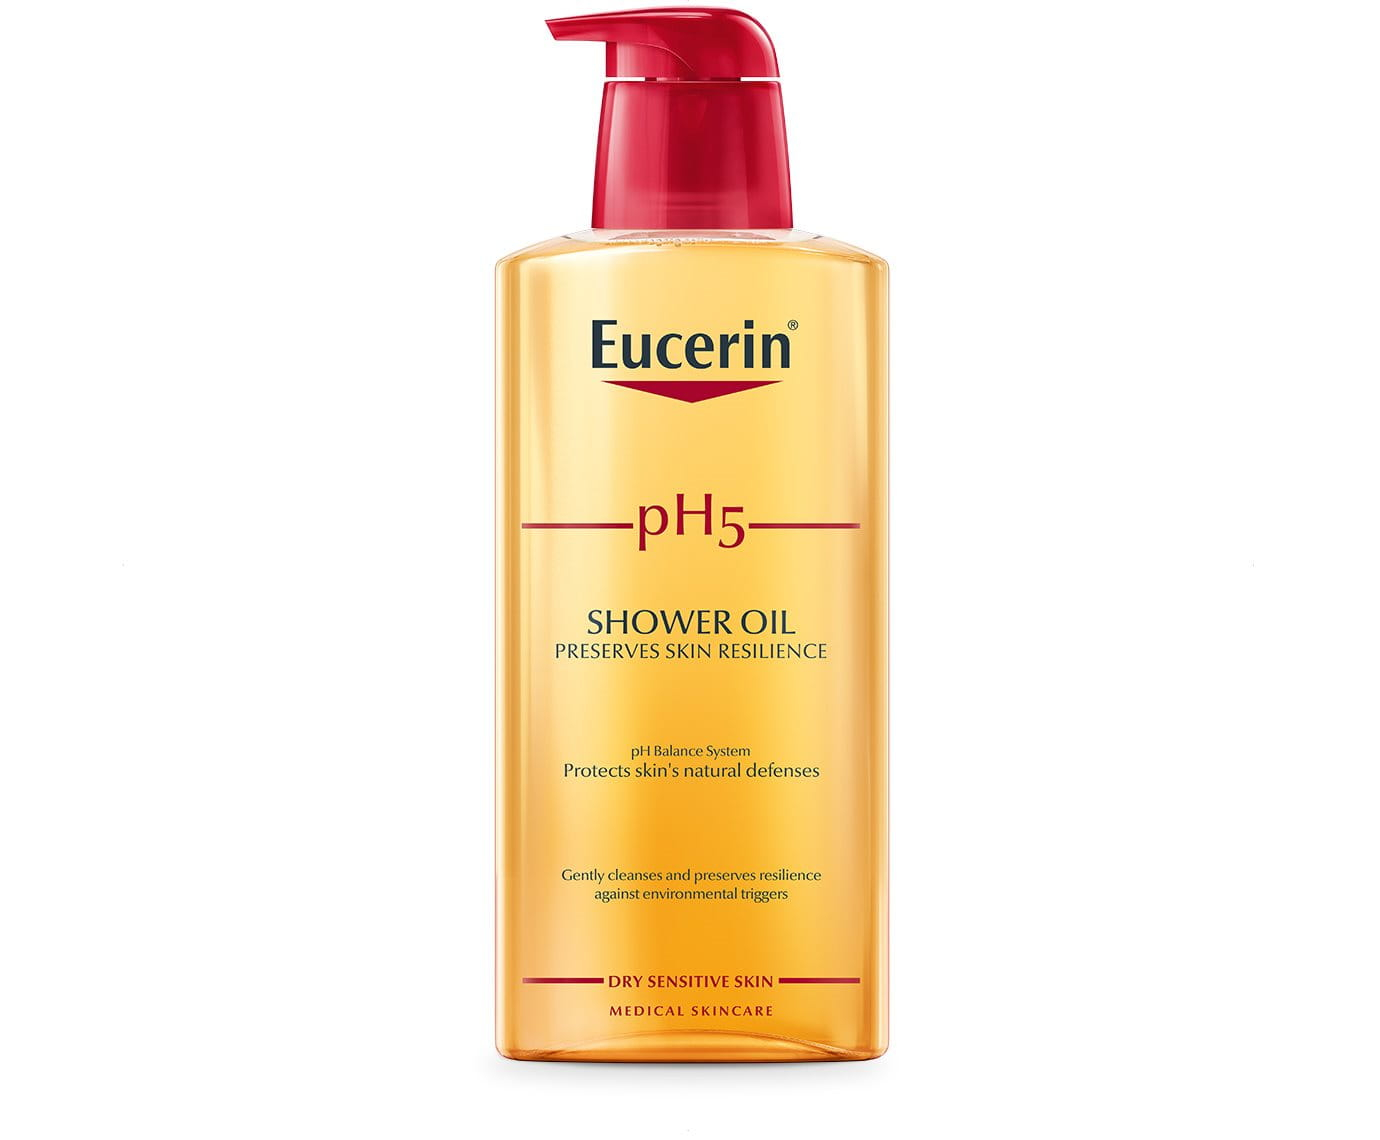 ph5 shower oil body cleanser for dry sensitive skin eucerin. Black Bedroom Furniture Sets. Home Design Ideas